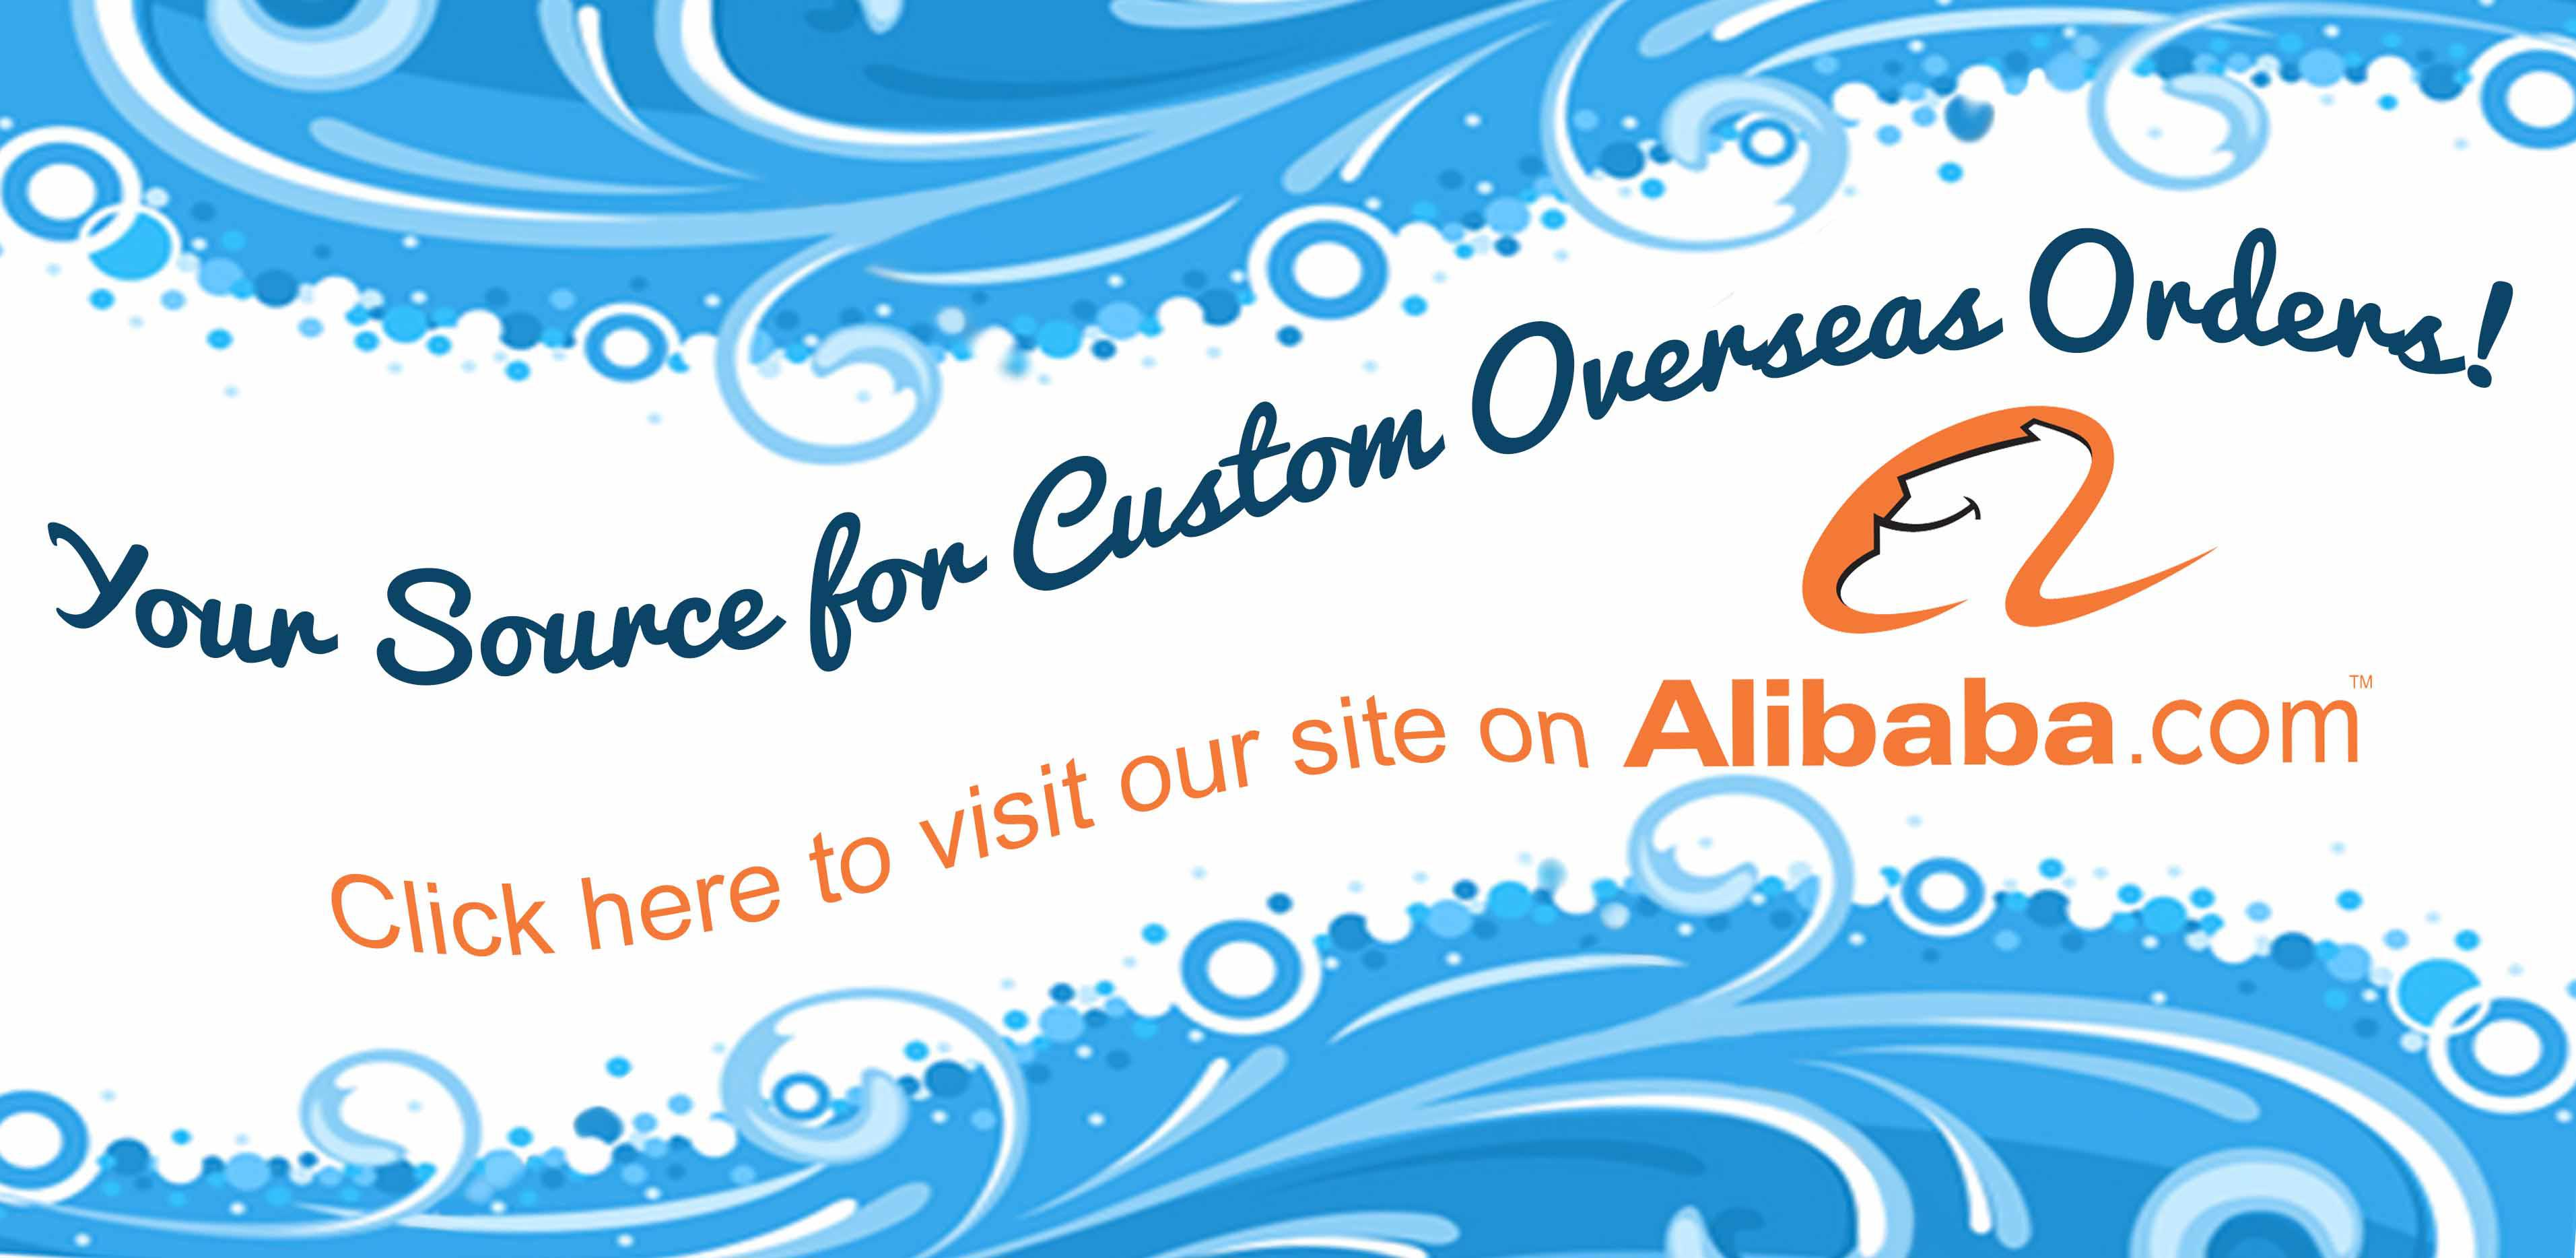 Promotional Products in Tampa FL - Marketing Products in Orlando FL - Your Source for Custom Overseas Orders